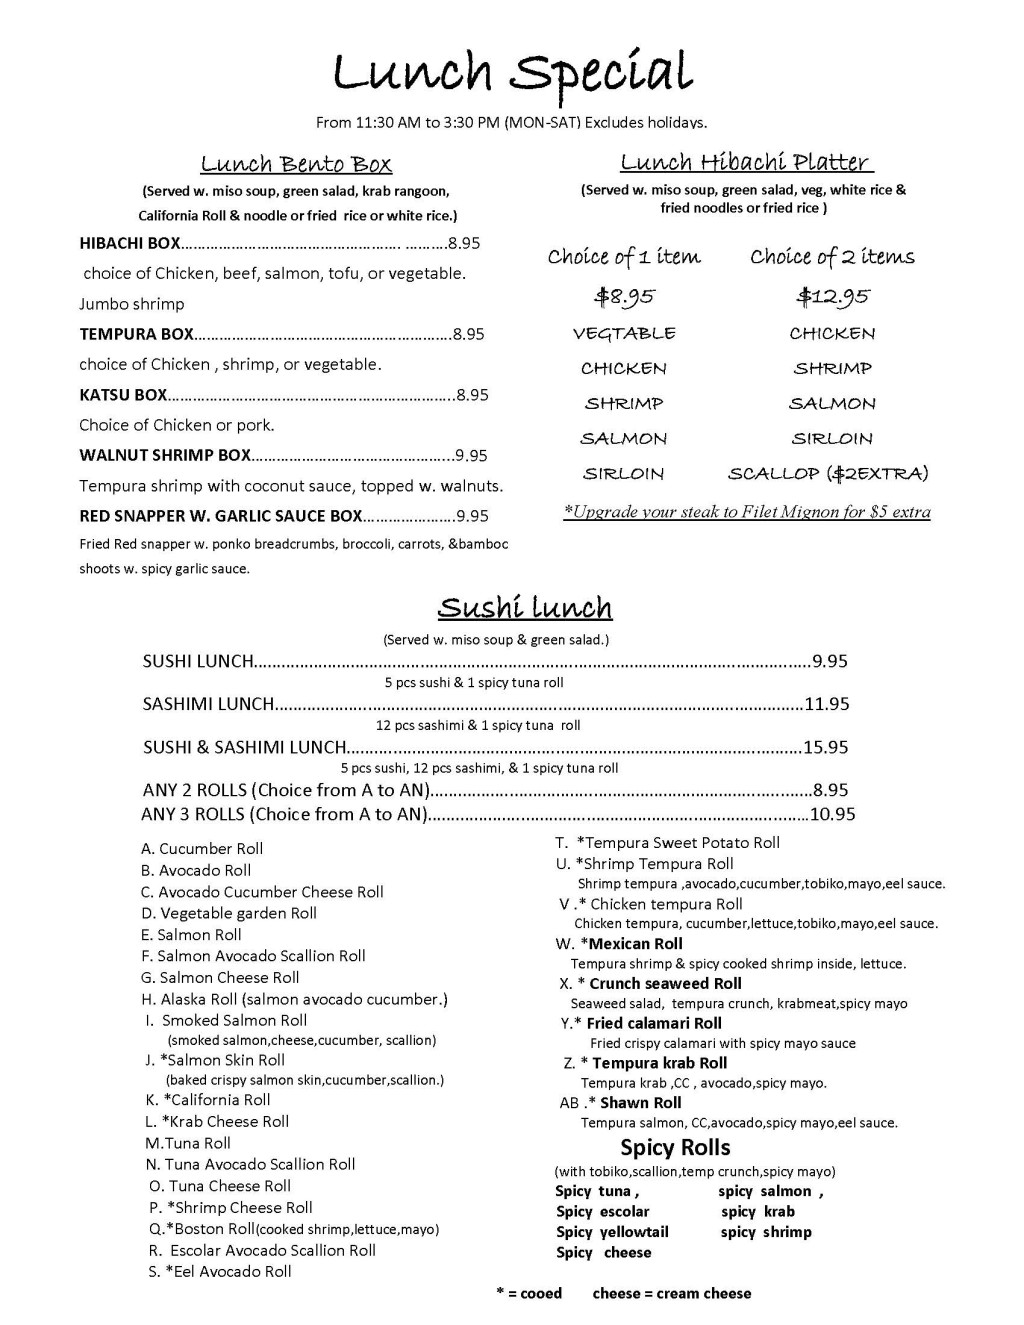 http://a-akisushi.com/wp-content/uploads/2016/03/SL-Lunch-menu-small-1024x1325.jpg